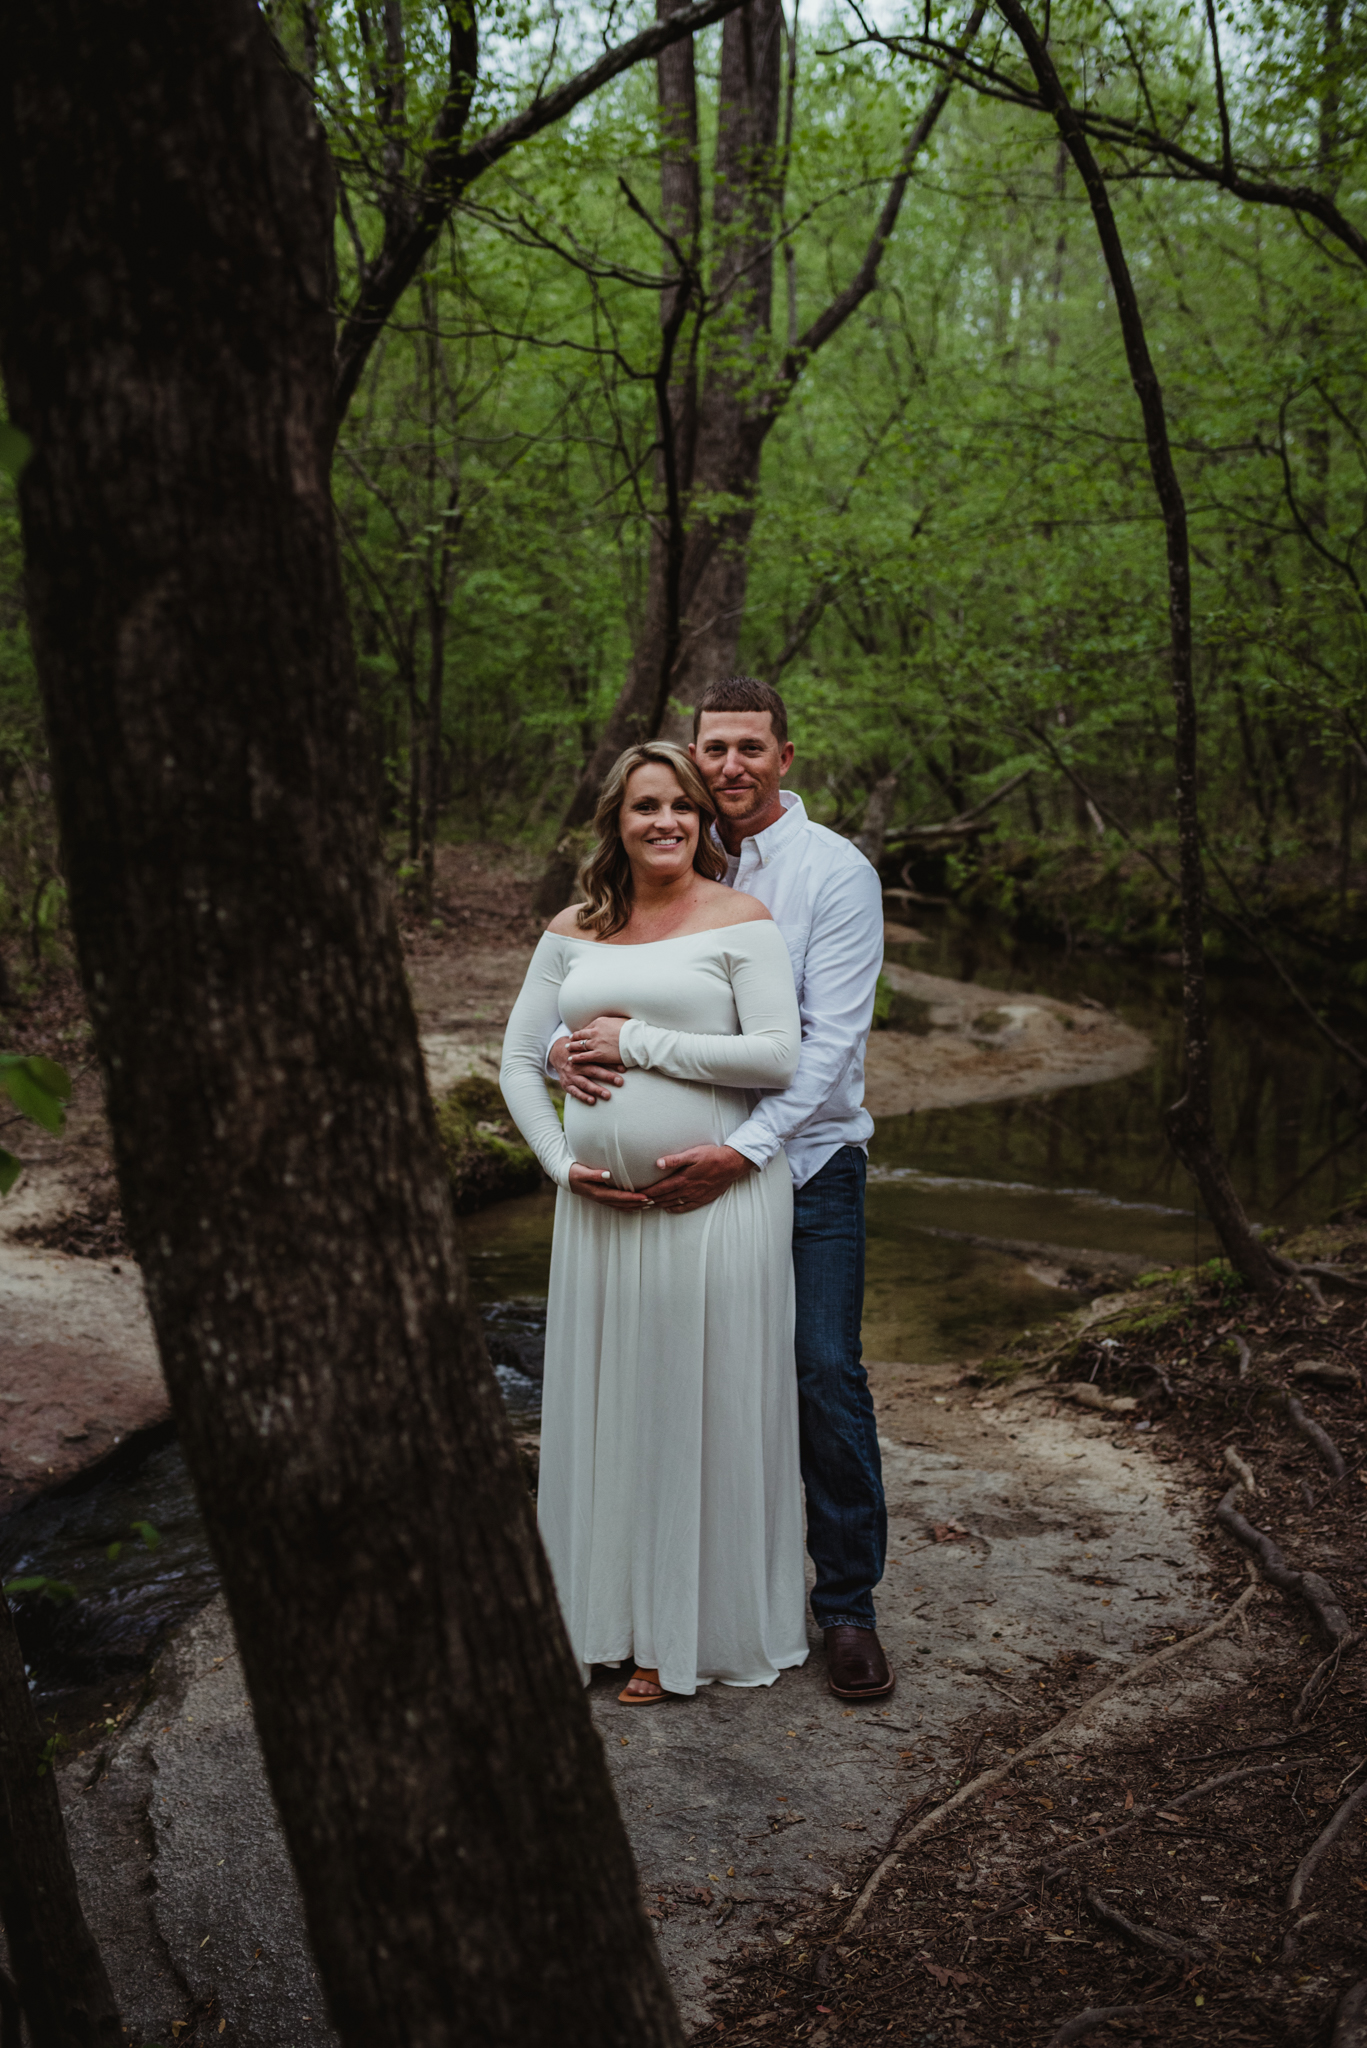 The soon to be parents stand together by the creek during their maternity shoot with Rose Trail Images at Mill Bridge Nature Park in Rolesville, NC.